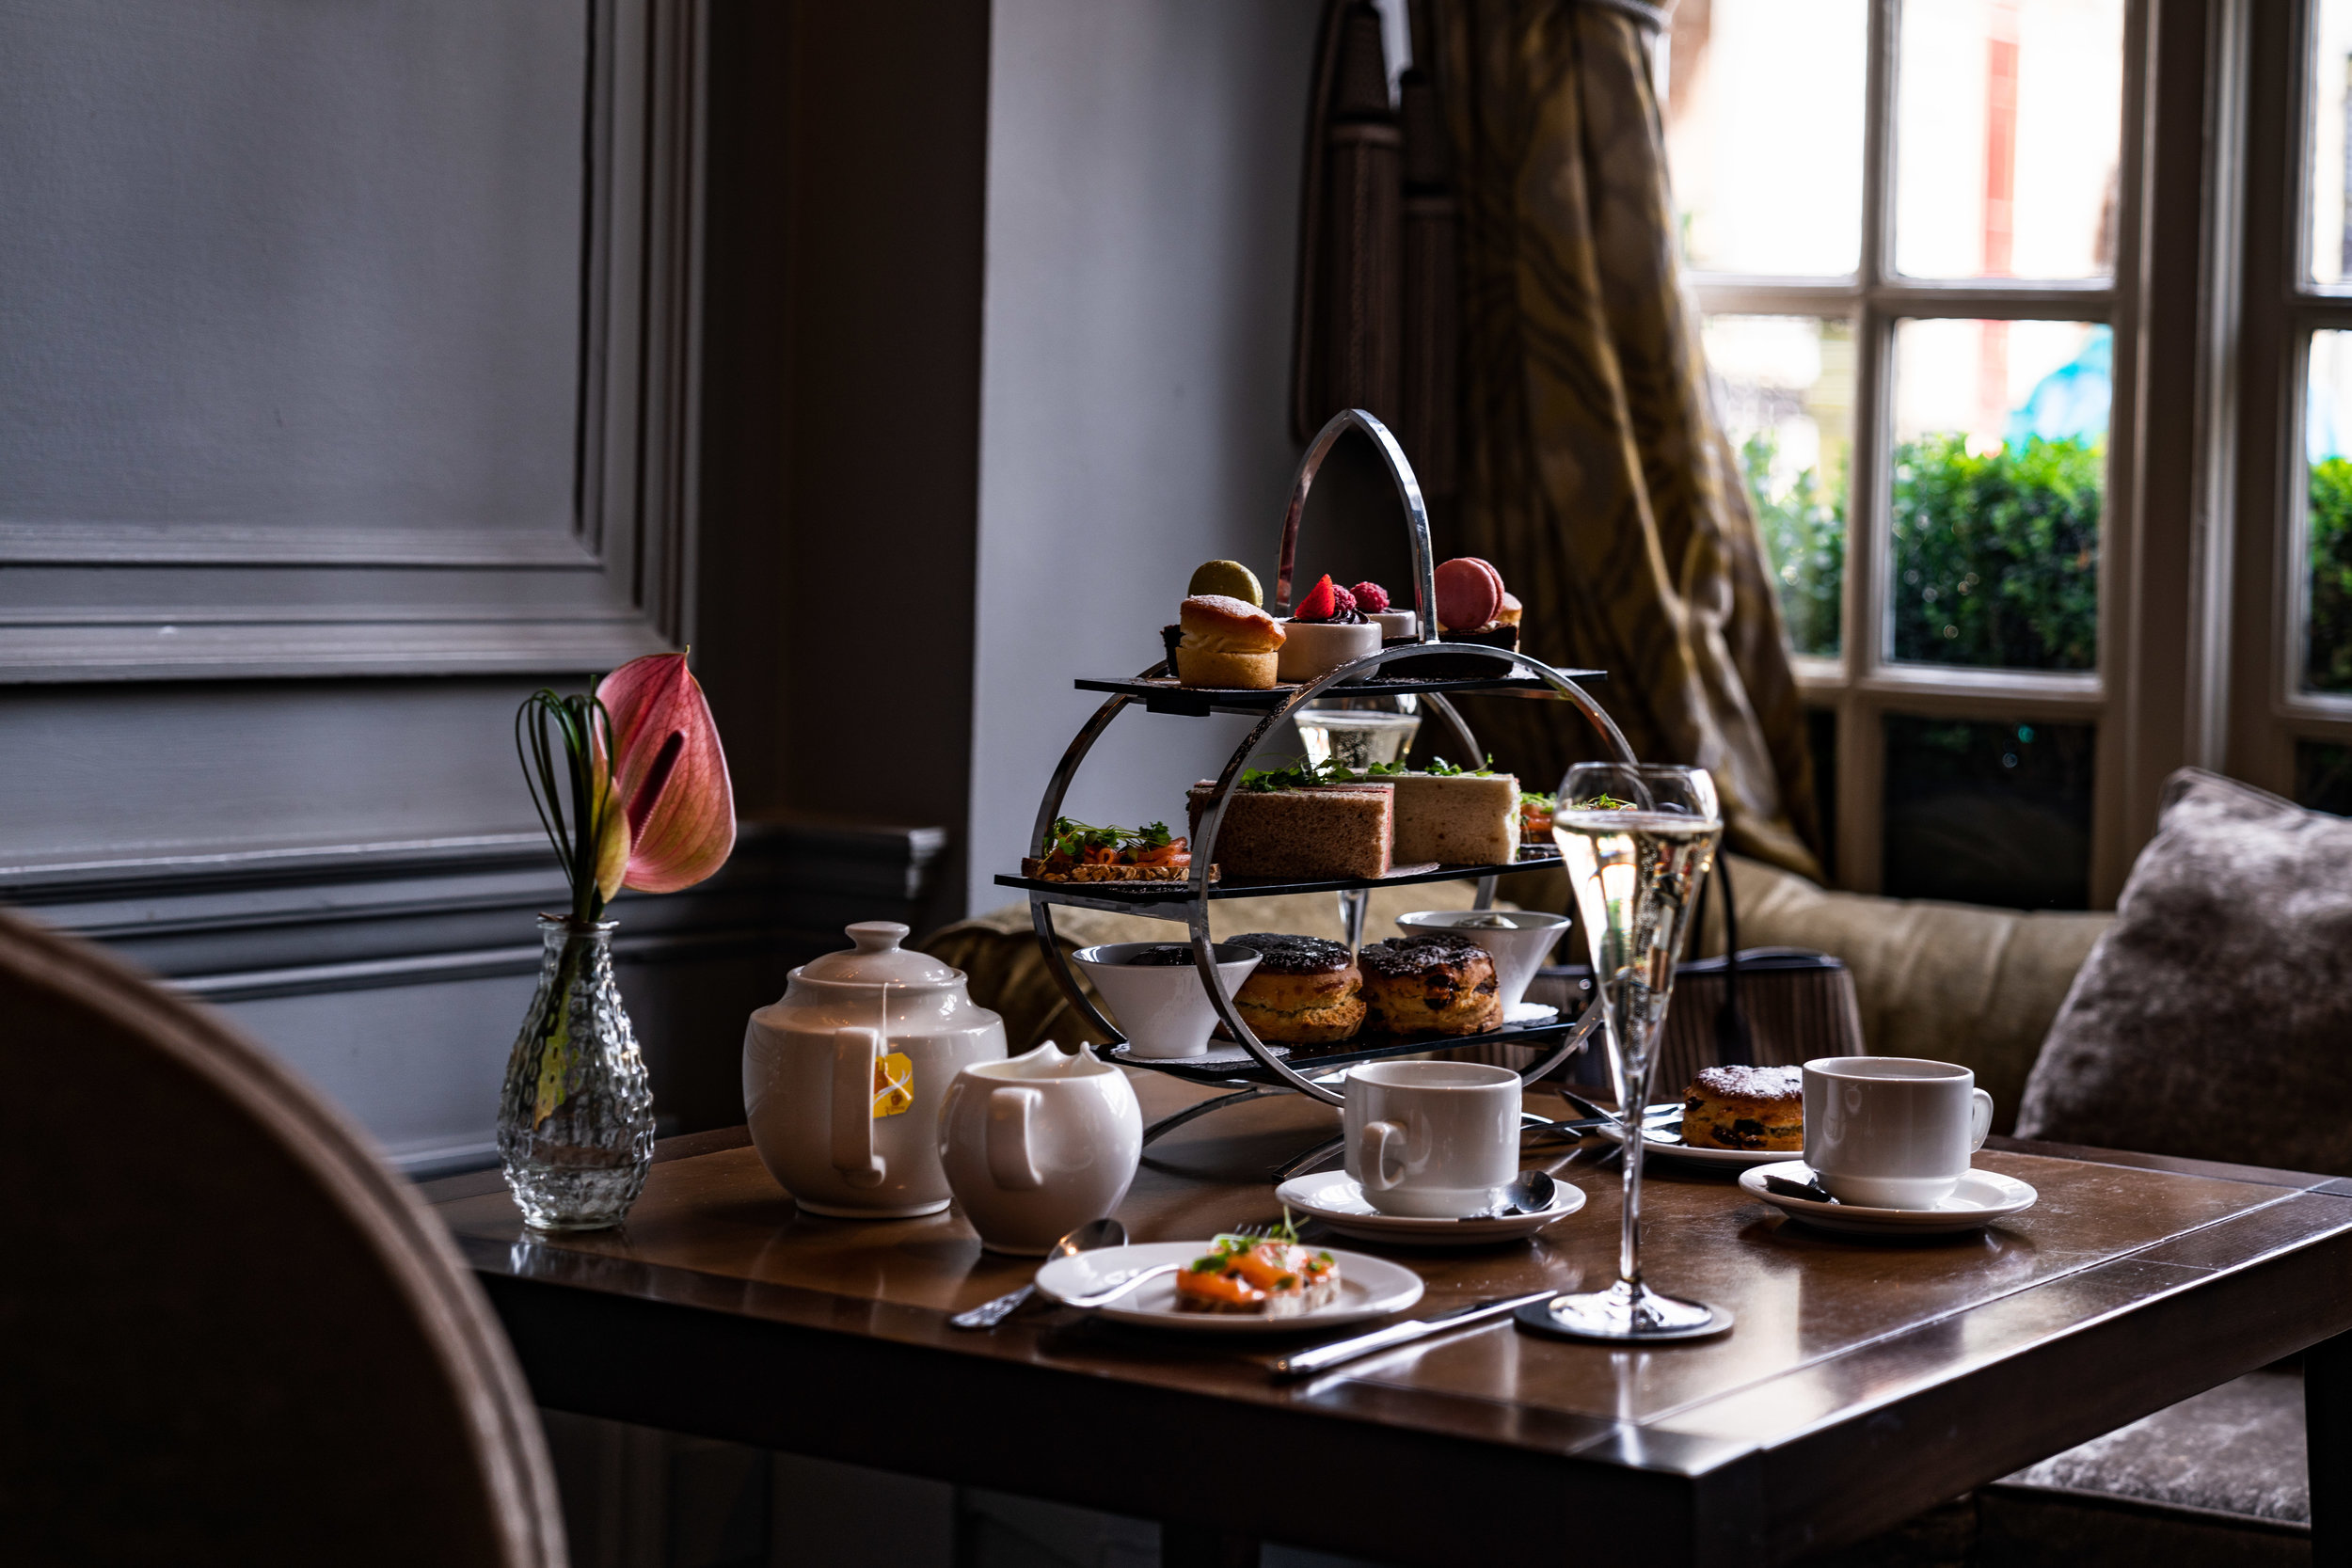 Afternoon tea at Castle Hotel MGallery Sofitel Windsor